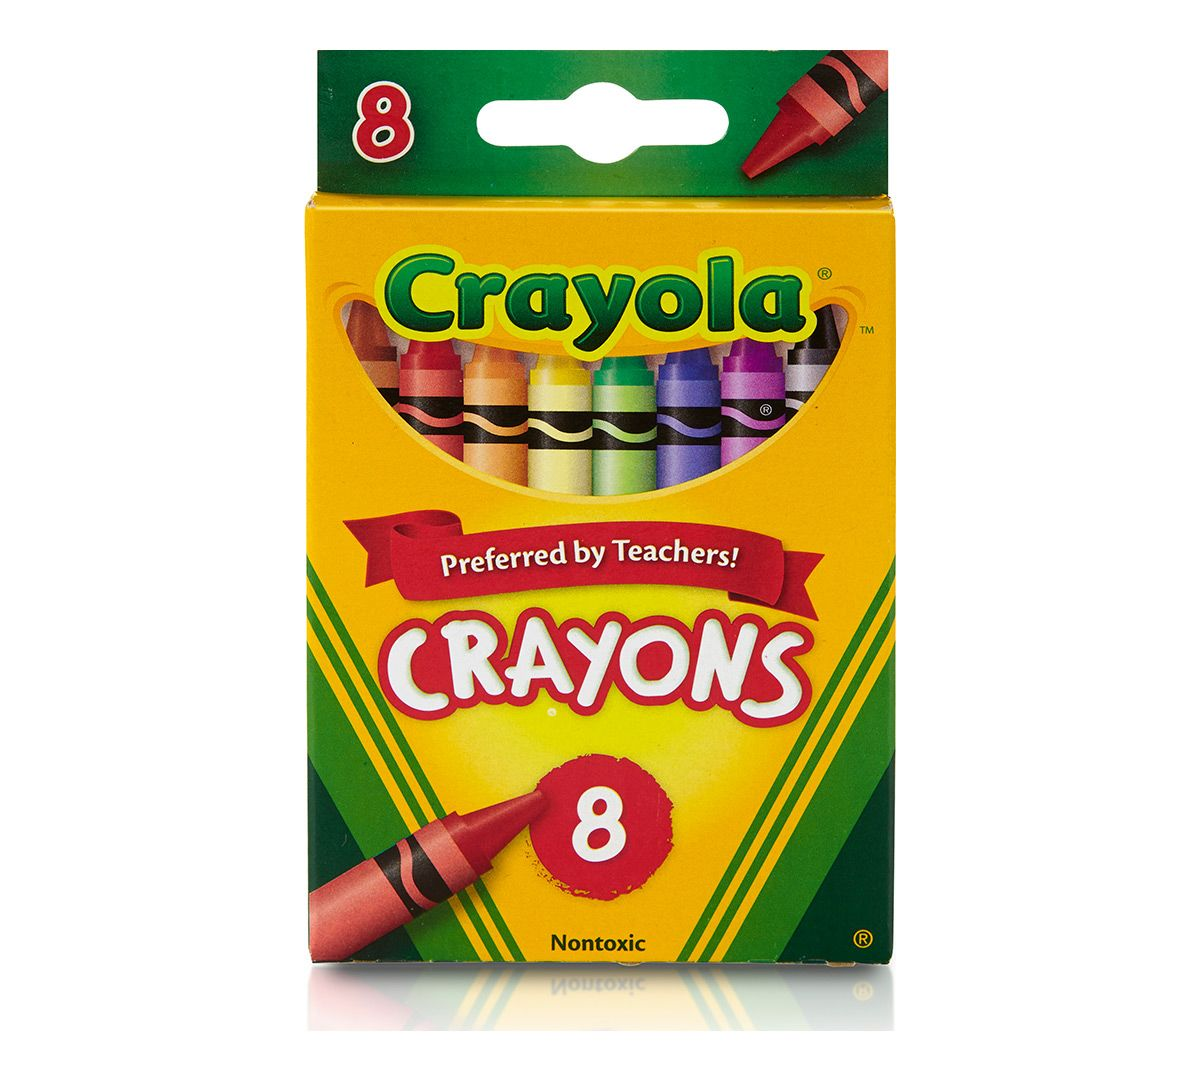 Crayola Wax Crayons - 8 Count